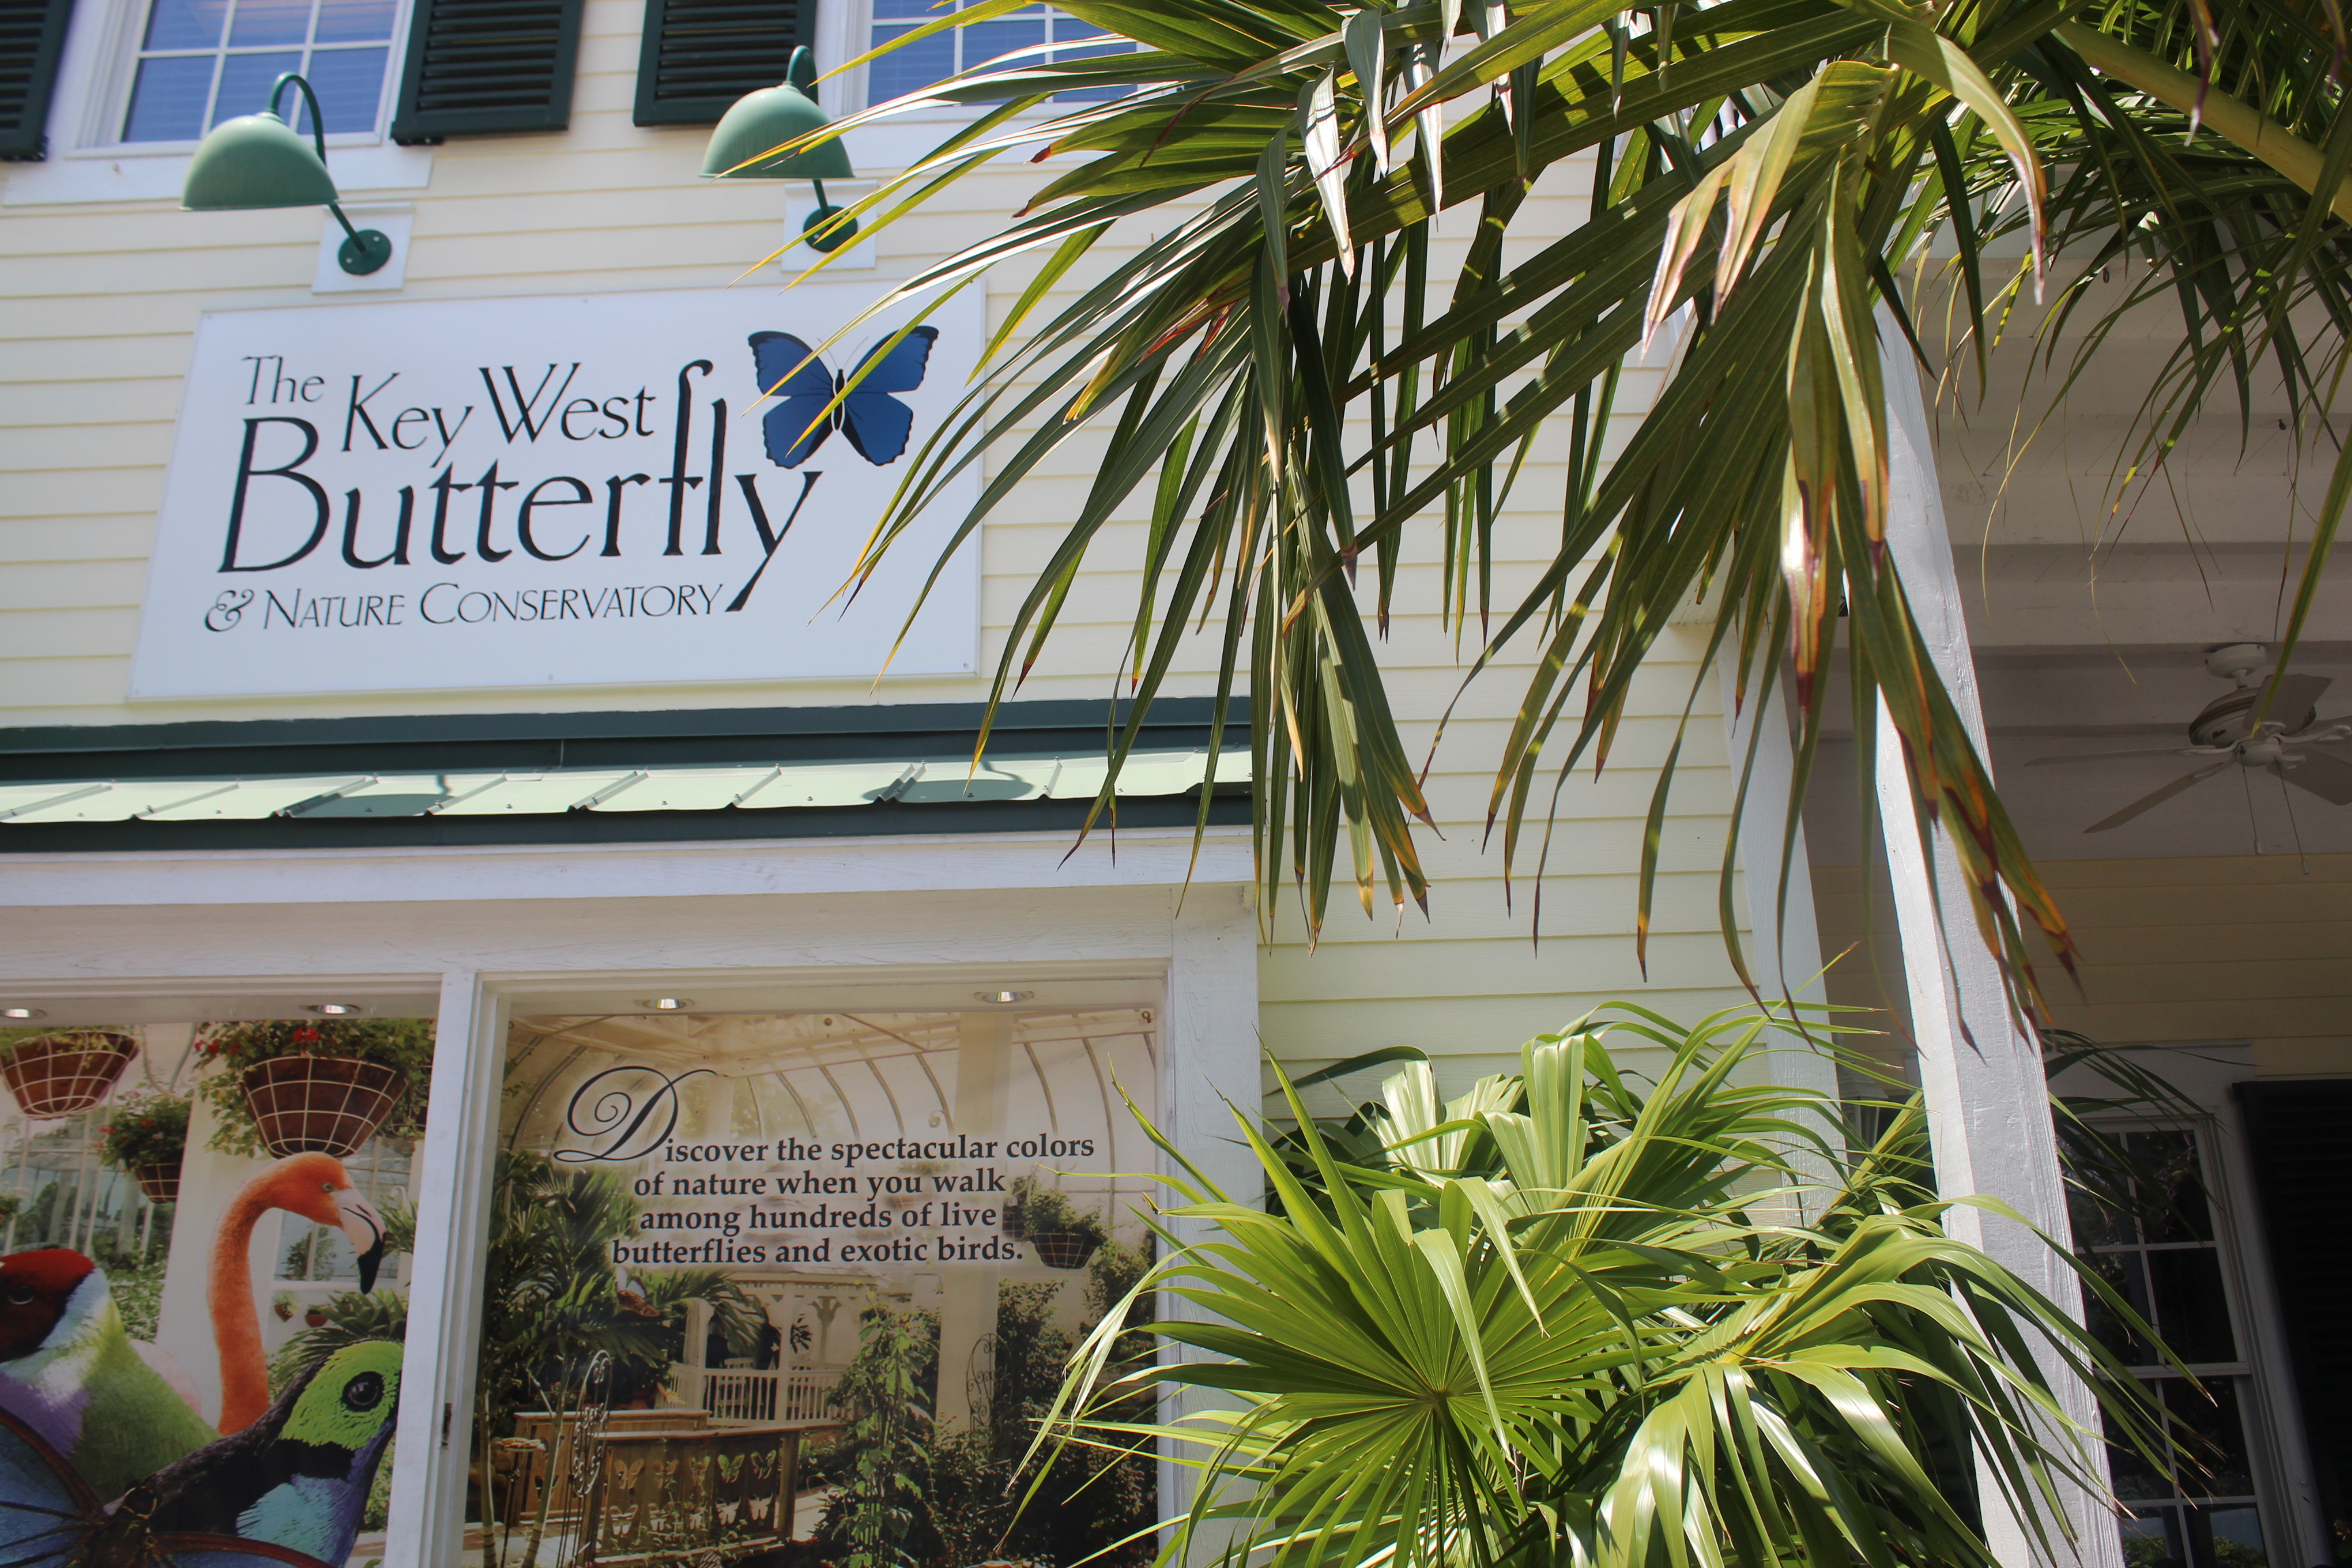 kw-butterfly-signage-2